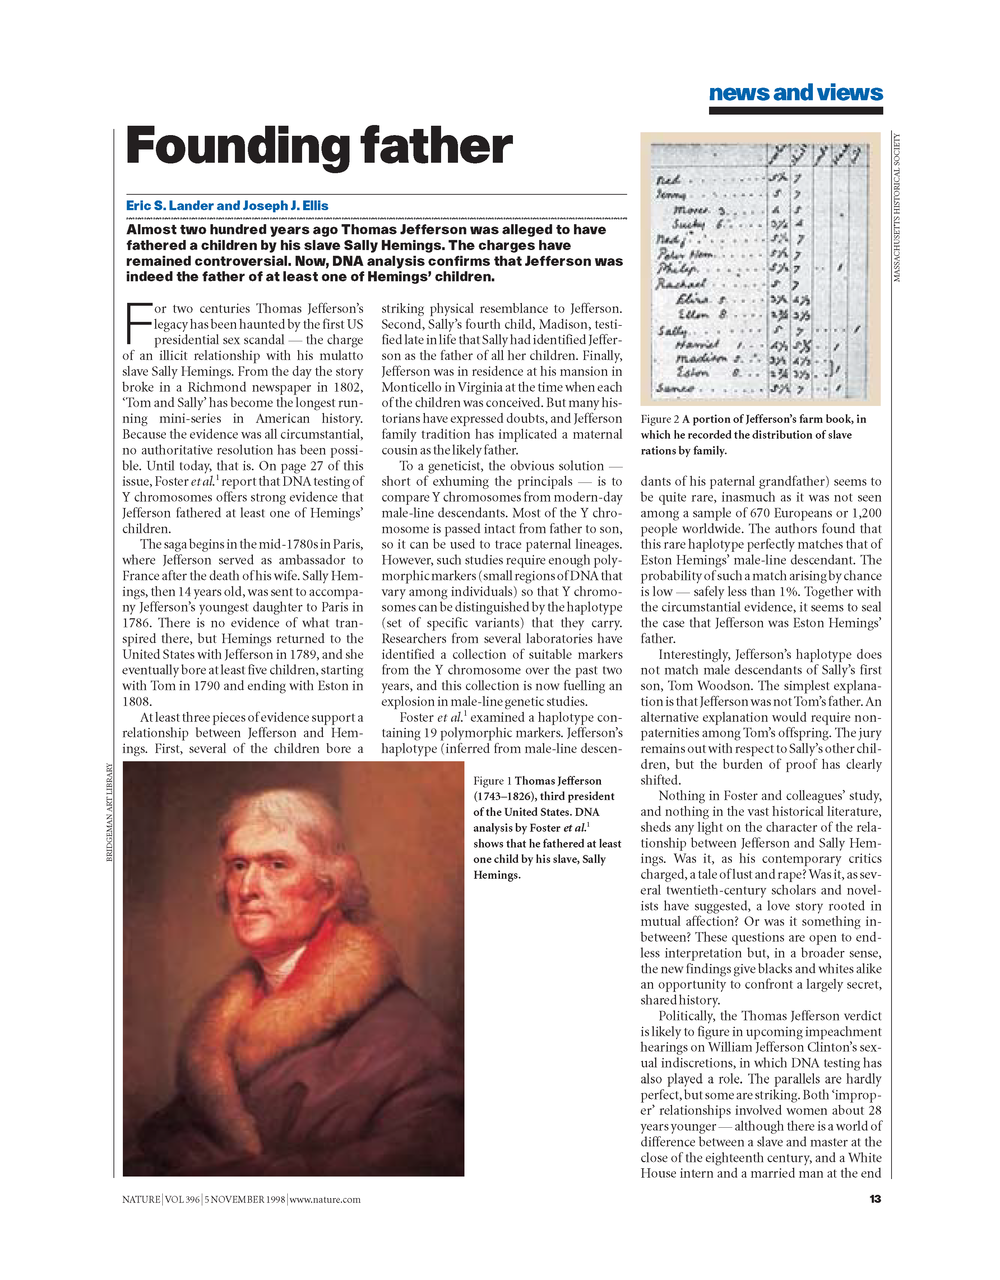 Founding father (1)_Page_1.png